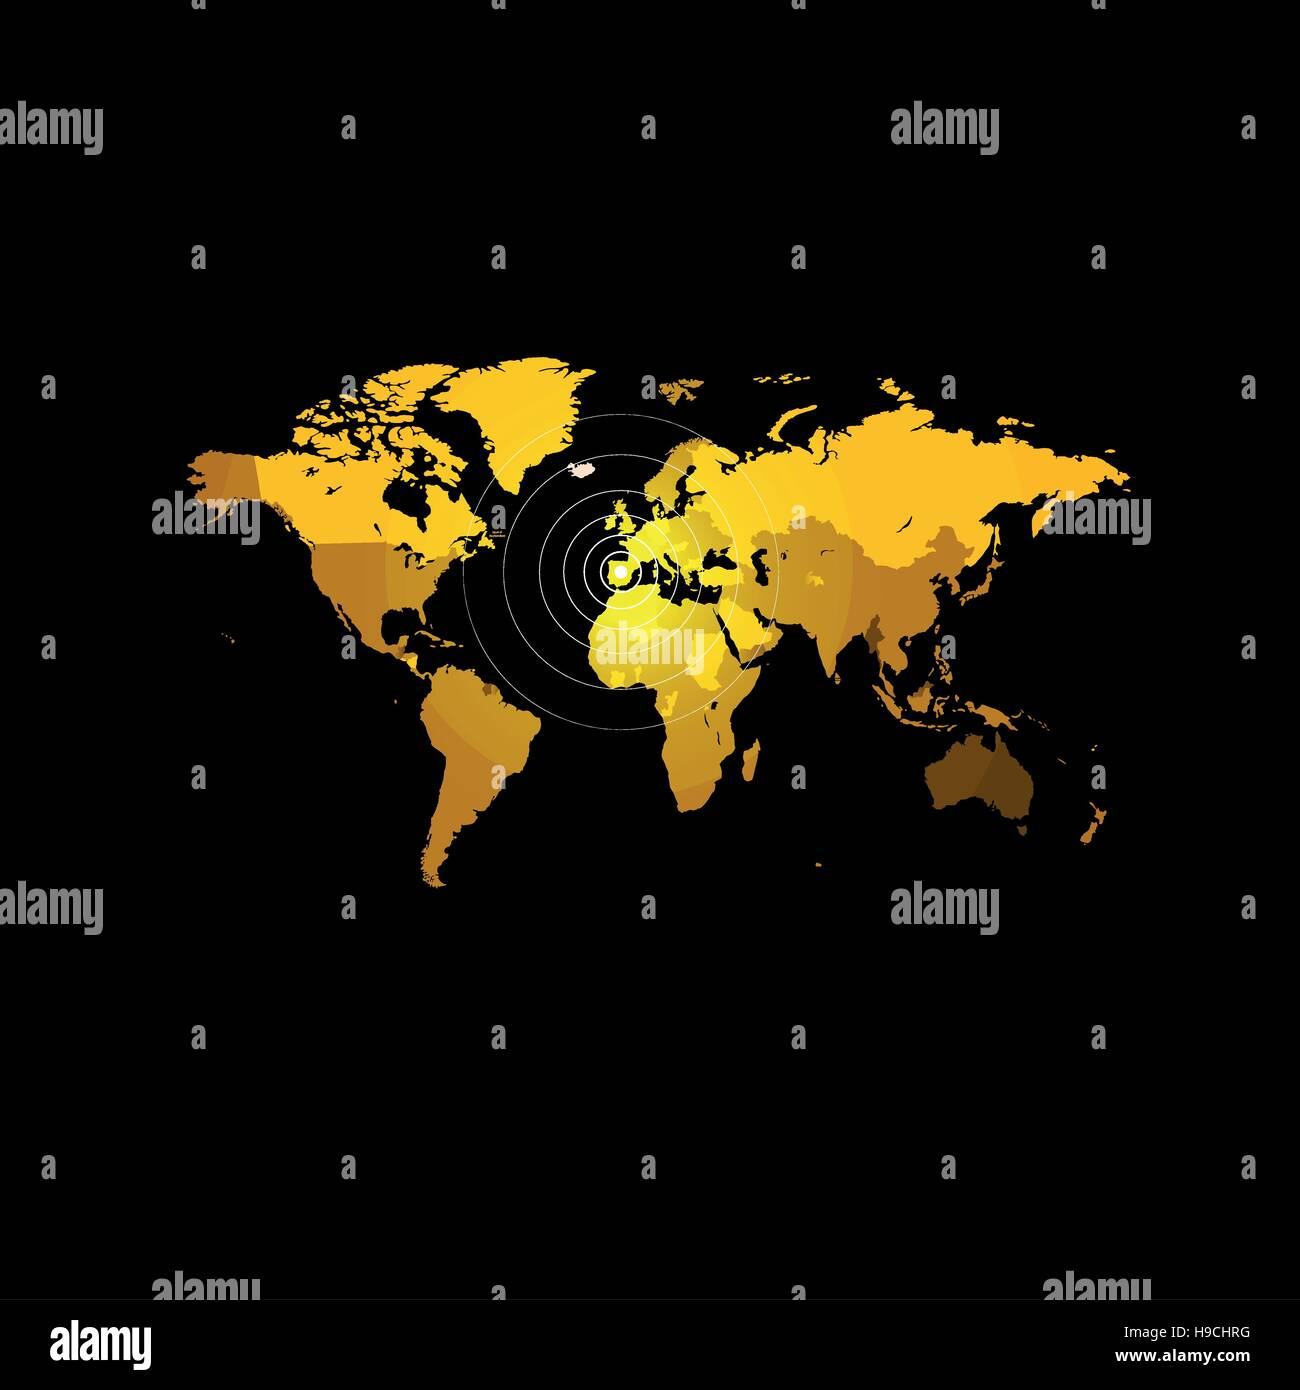 Orange color world map on black background globe design backdrop orange color world map on black background globe design backdrop cartography element wallpaper geographic locations image continents vector illustration gumiabroncs Image collections